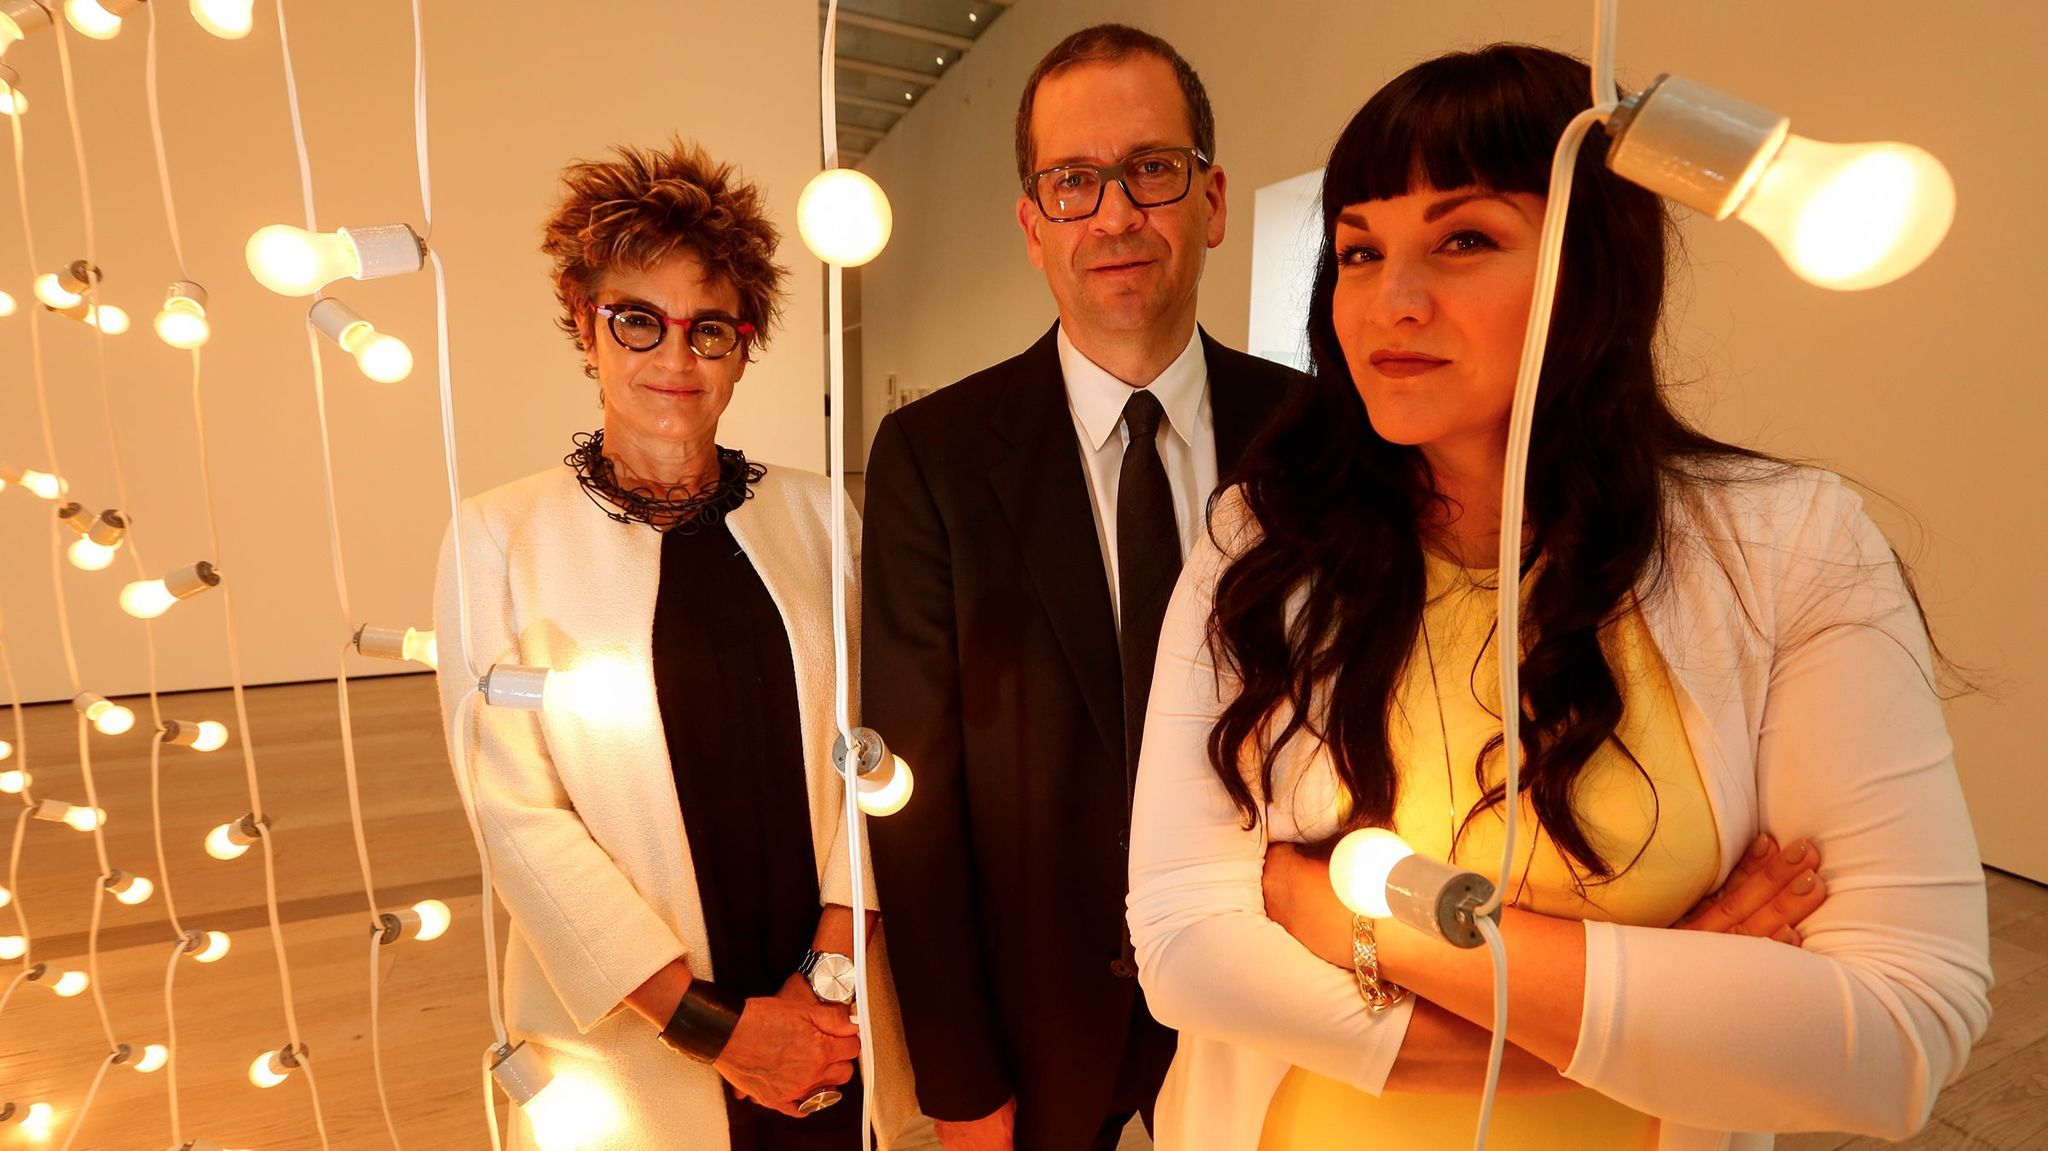 Curators Mari Carmen Ramirez, Chon A. Noriega and Pilar Tompkins Rivas stand next to a work by the late Felix Gonzalez-Torres at LACMA.